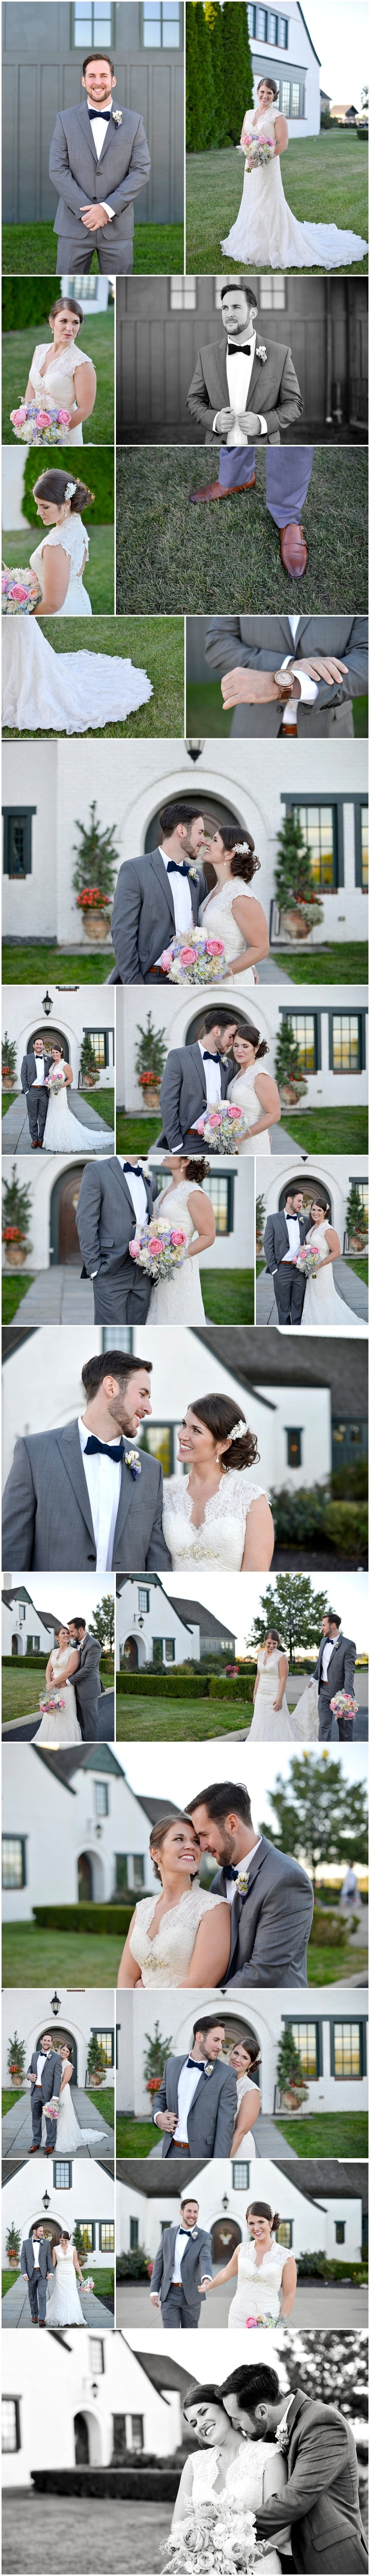 View More: http://exactmomentsphotography.pass.us/farmer